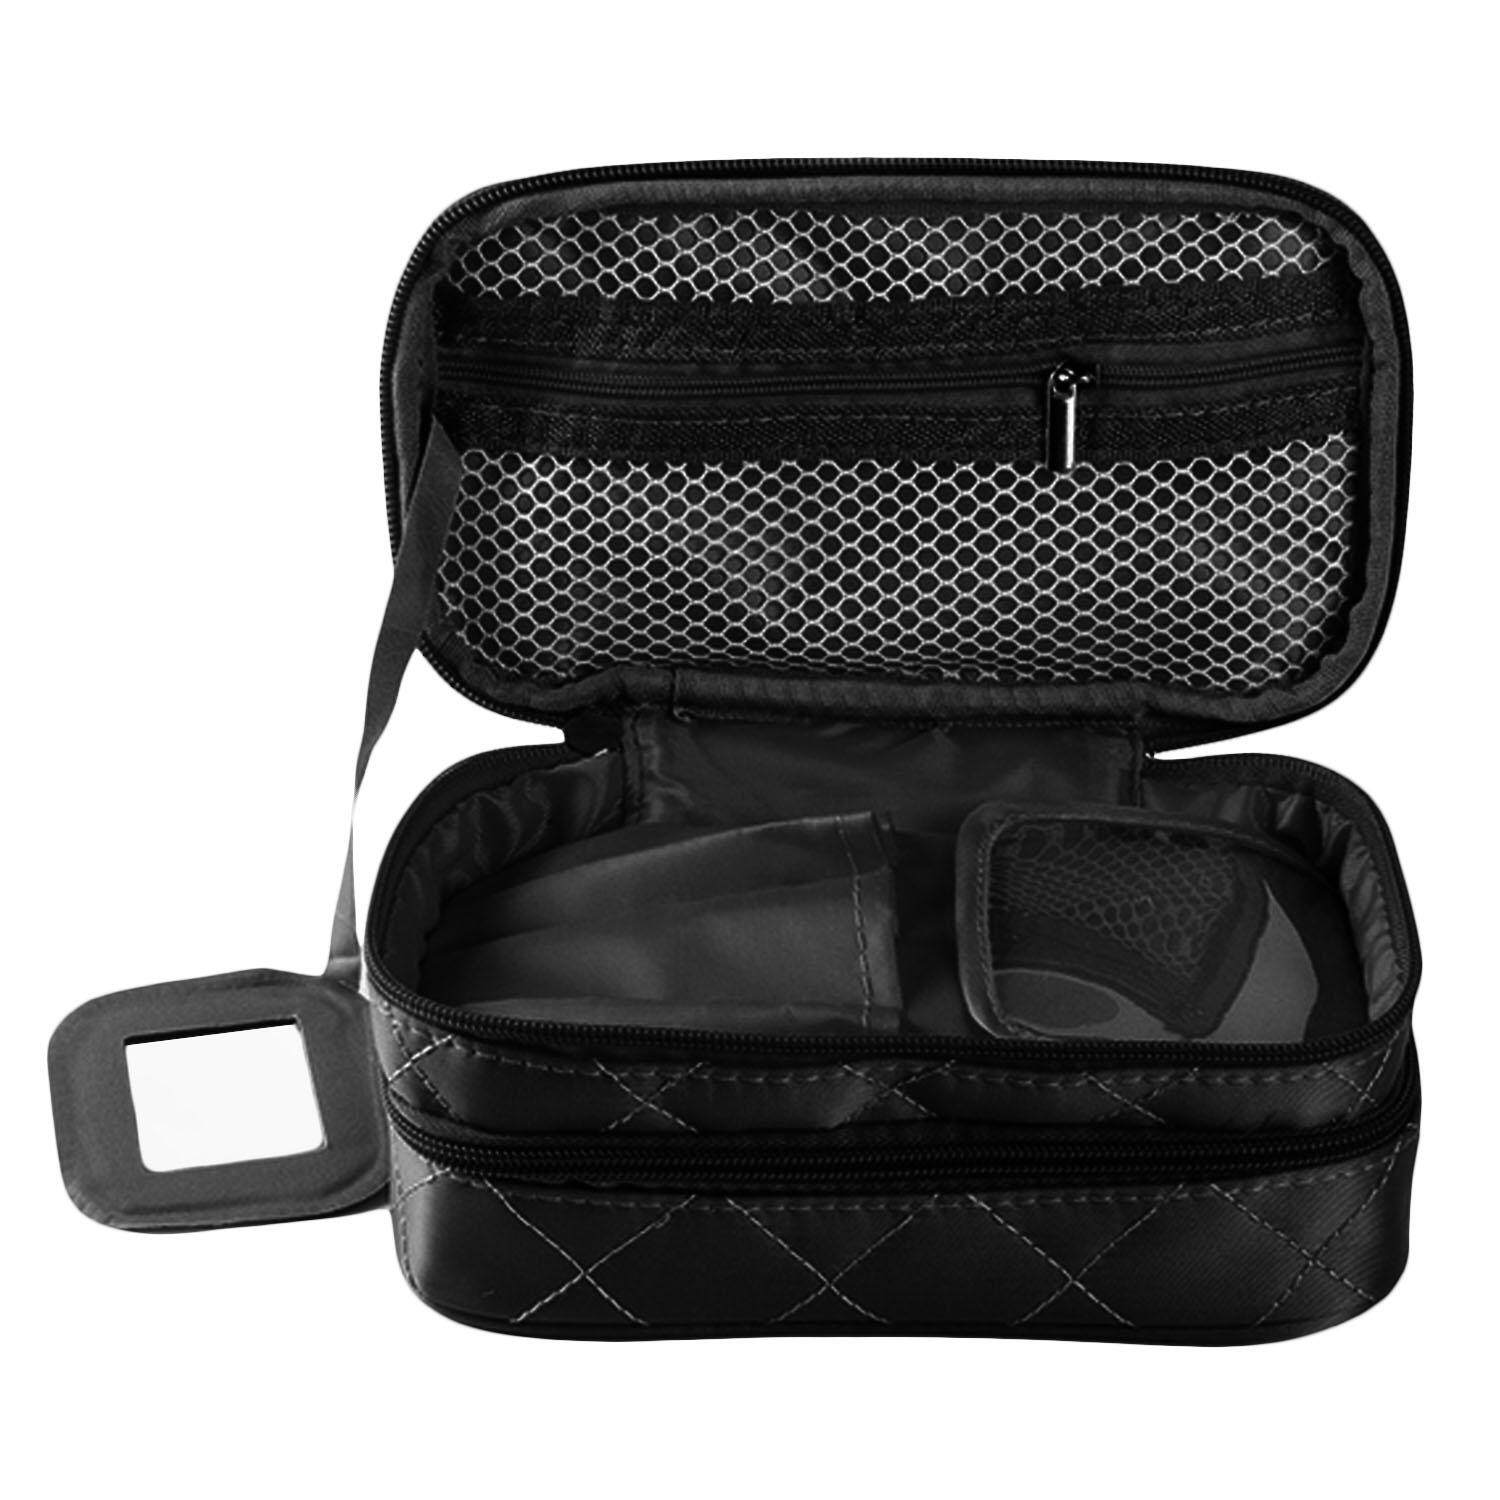 Multifunctional Portable Travel Toiletry Bag Makeup Cosmetic Organizer Shower Wash Bag Case Household Grooming Kit Storage